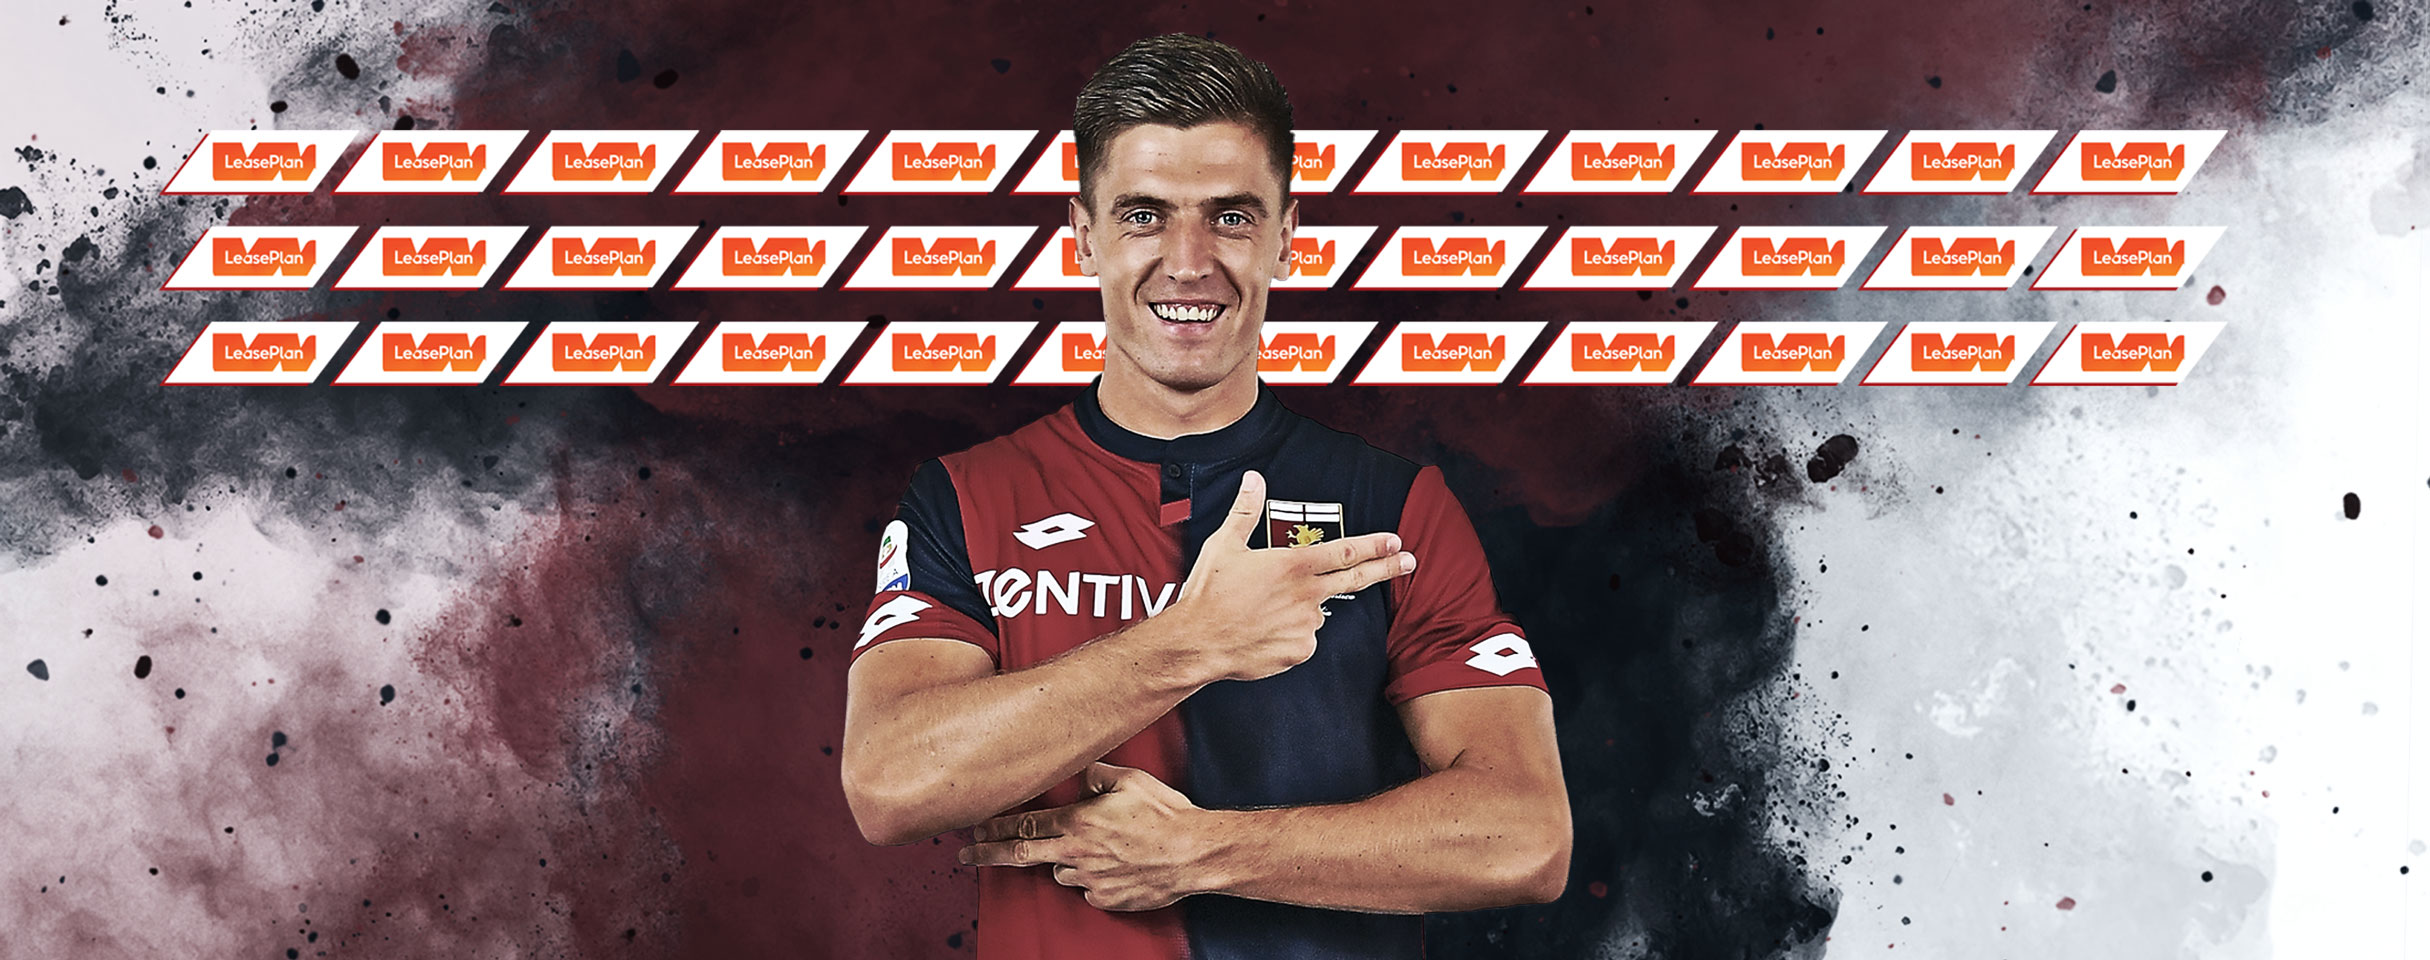 Piatek day 1